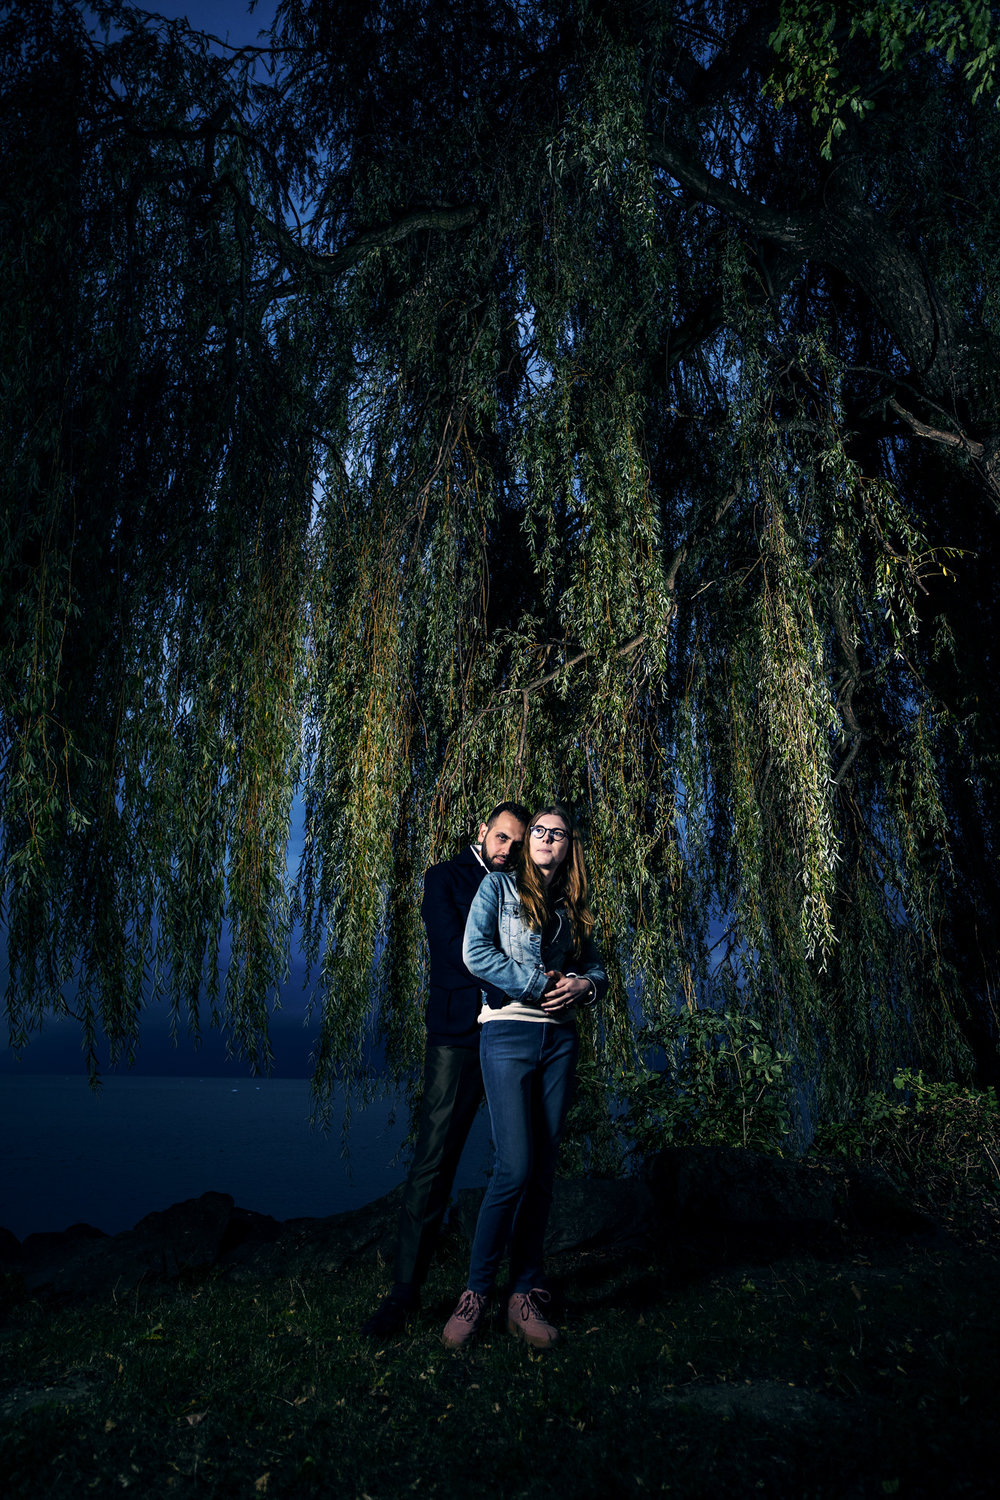 - We headed back to the Willow tree so Raj could capture some more dramatic night time photos under the tree branches.This evening couple photoshoot worked really well to give them a variety of pretty natural light photos as well as these moody dramatic photos as the sun set.